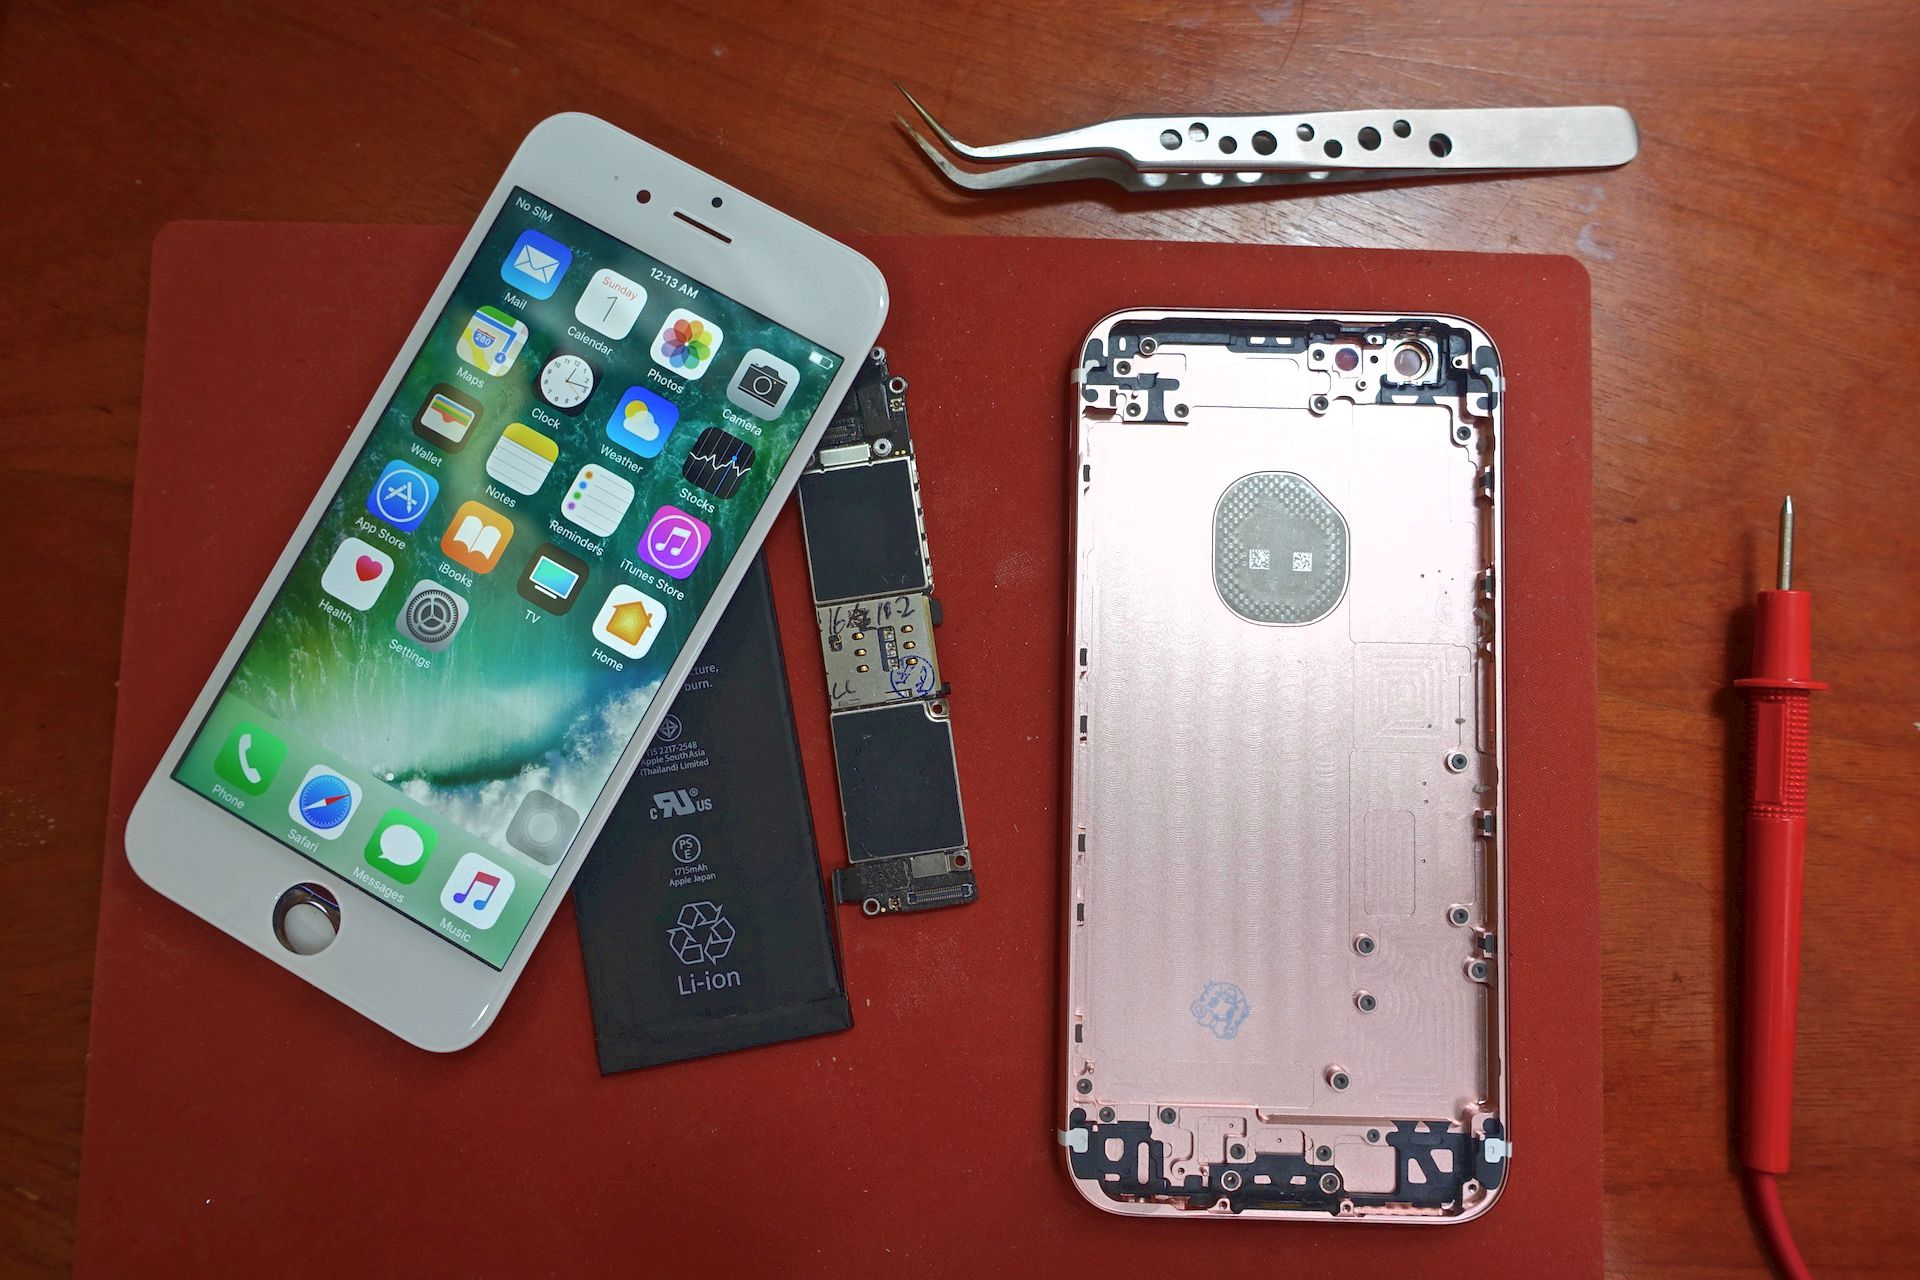 Guy Builds Diy Iphone 6s For Under Half The Cost Of A Replacement 4 Diagram Logic Board Fundamental Parts To Create An Apple Screen Casing Battery And